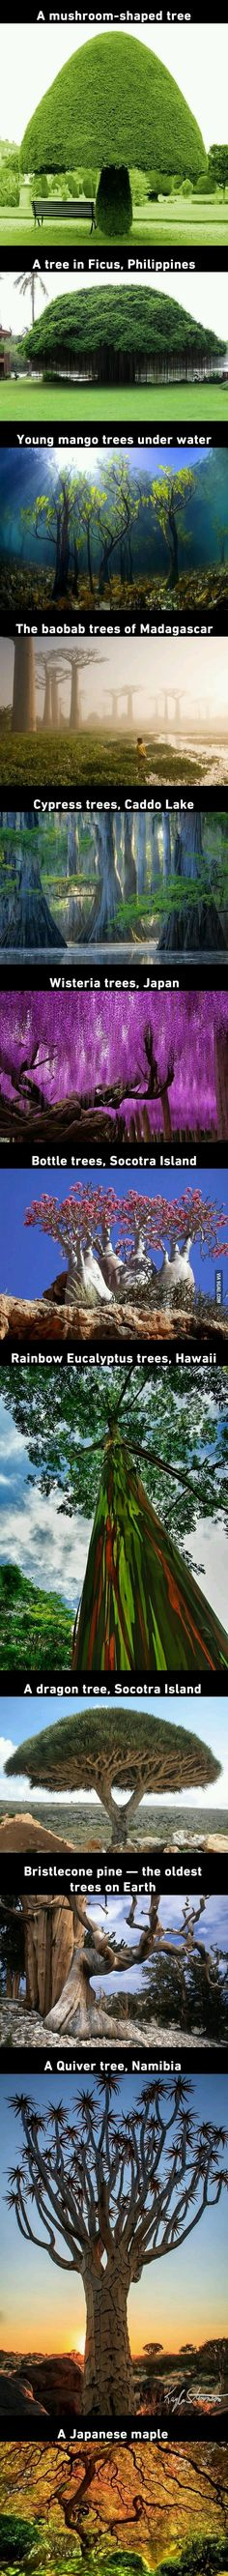 12 Beautiful Trees That You'd Thought They Grow On Pandora From Avatar - Garden Types Beautiful Places To Travel, Cool Places To Visit, Beautiful World, Beautiful Beautiful, Garden Types, Belle Photo, Amazing Nature, Beautiful Landscapes, Wonders Of The World